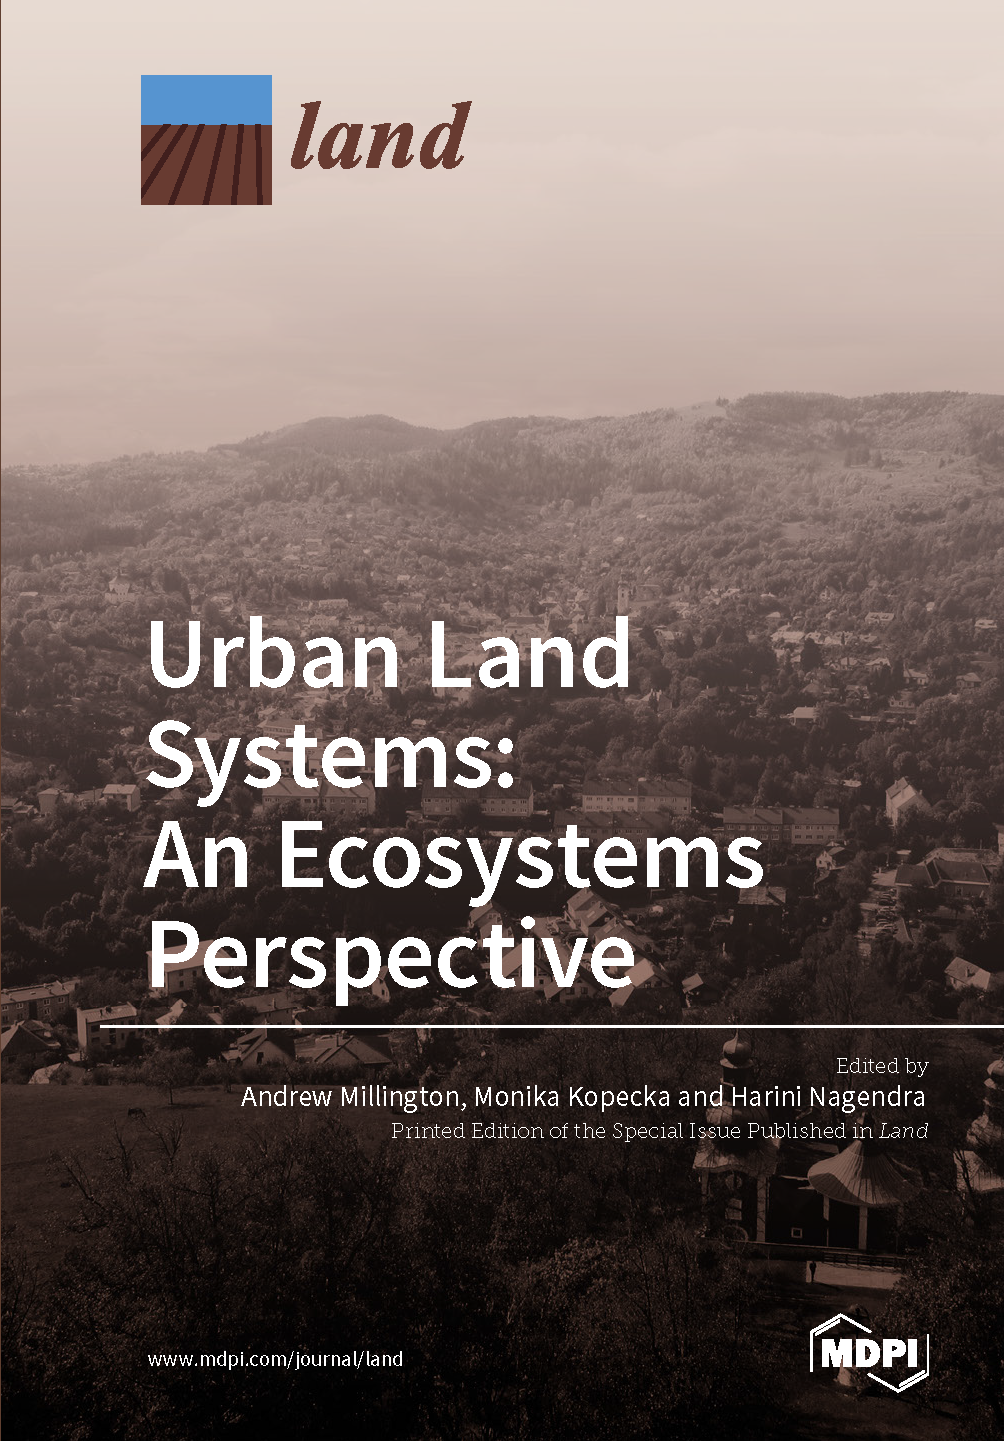 Urban Land Systems: An Ecosystems Perspective